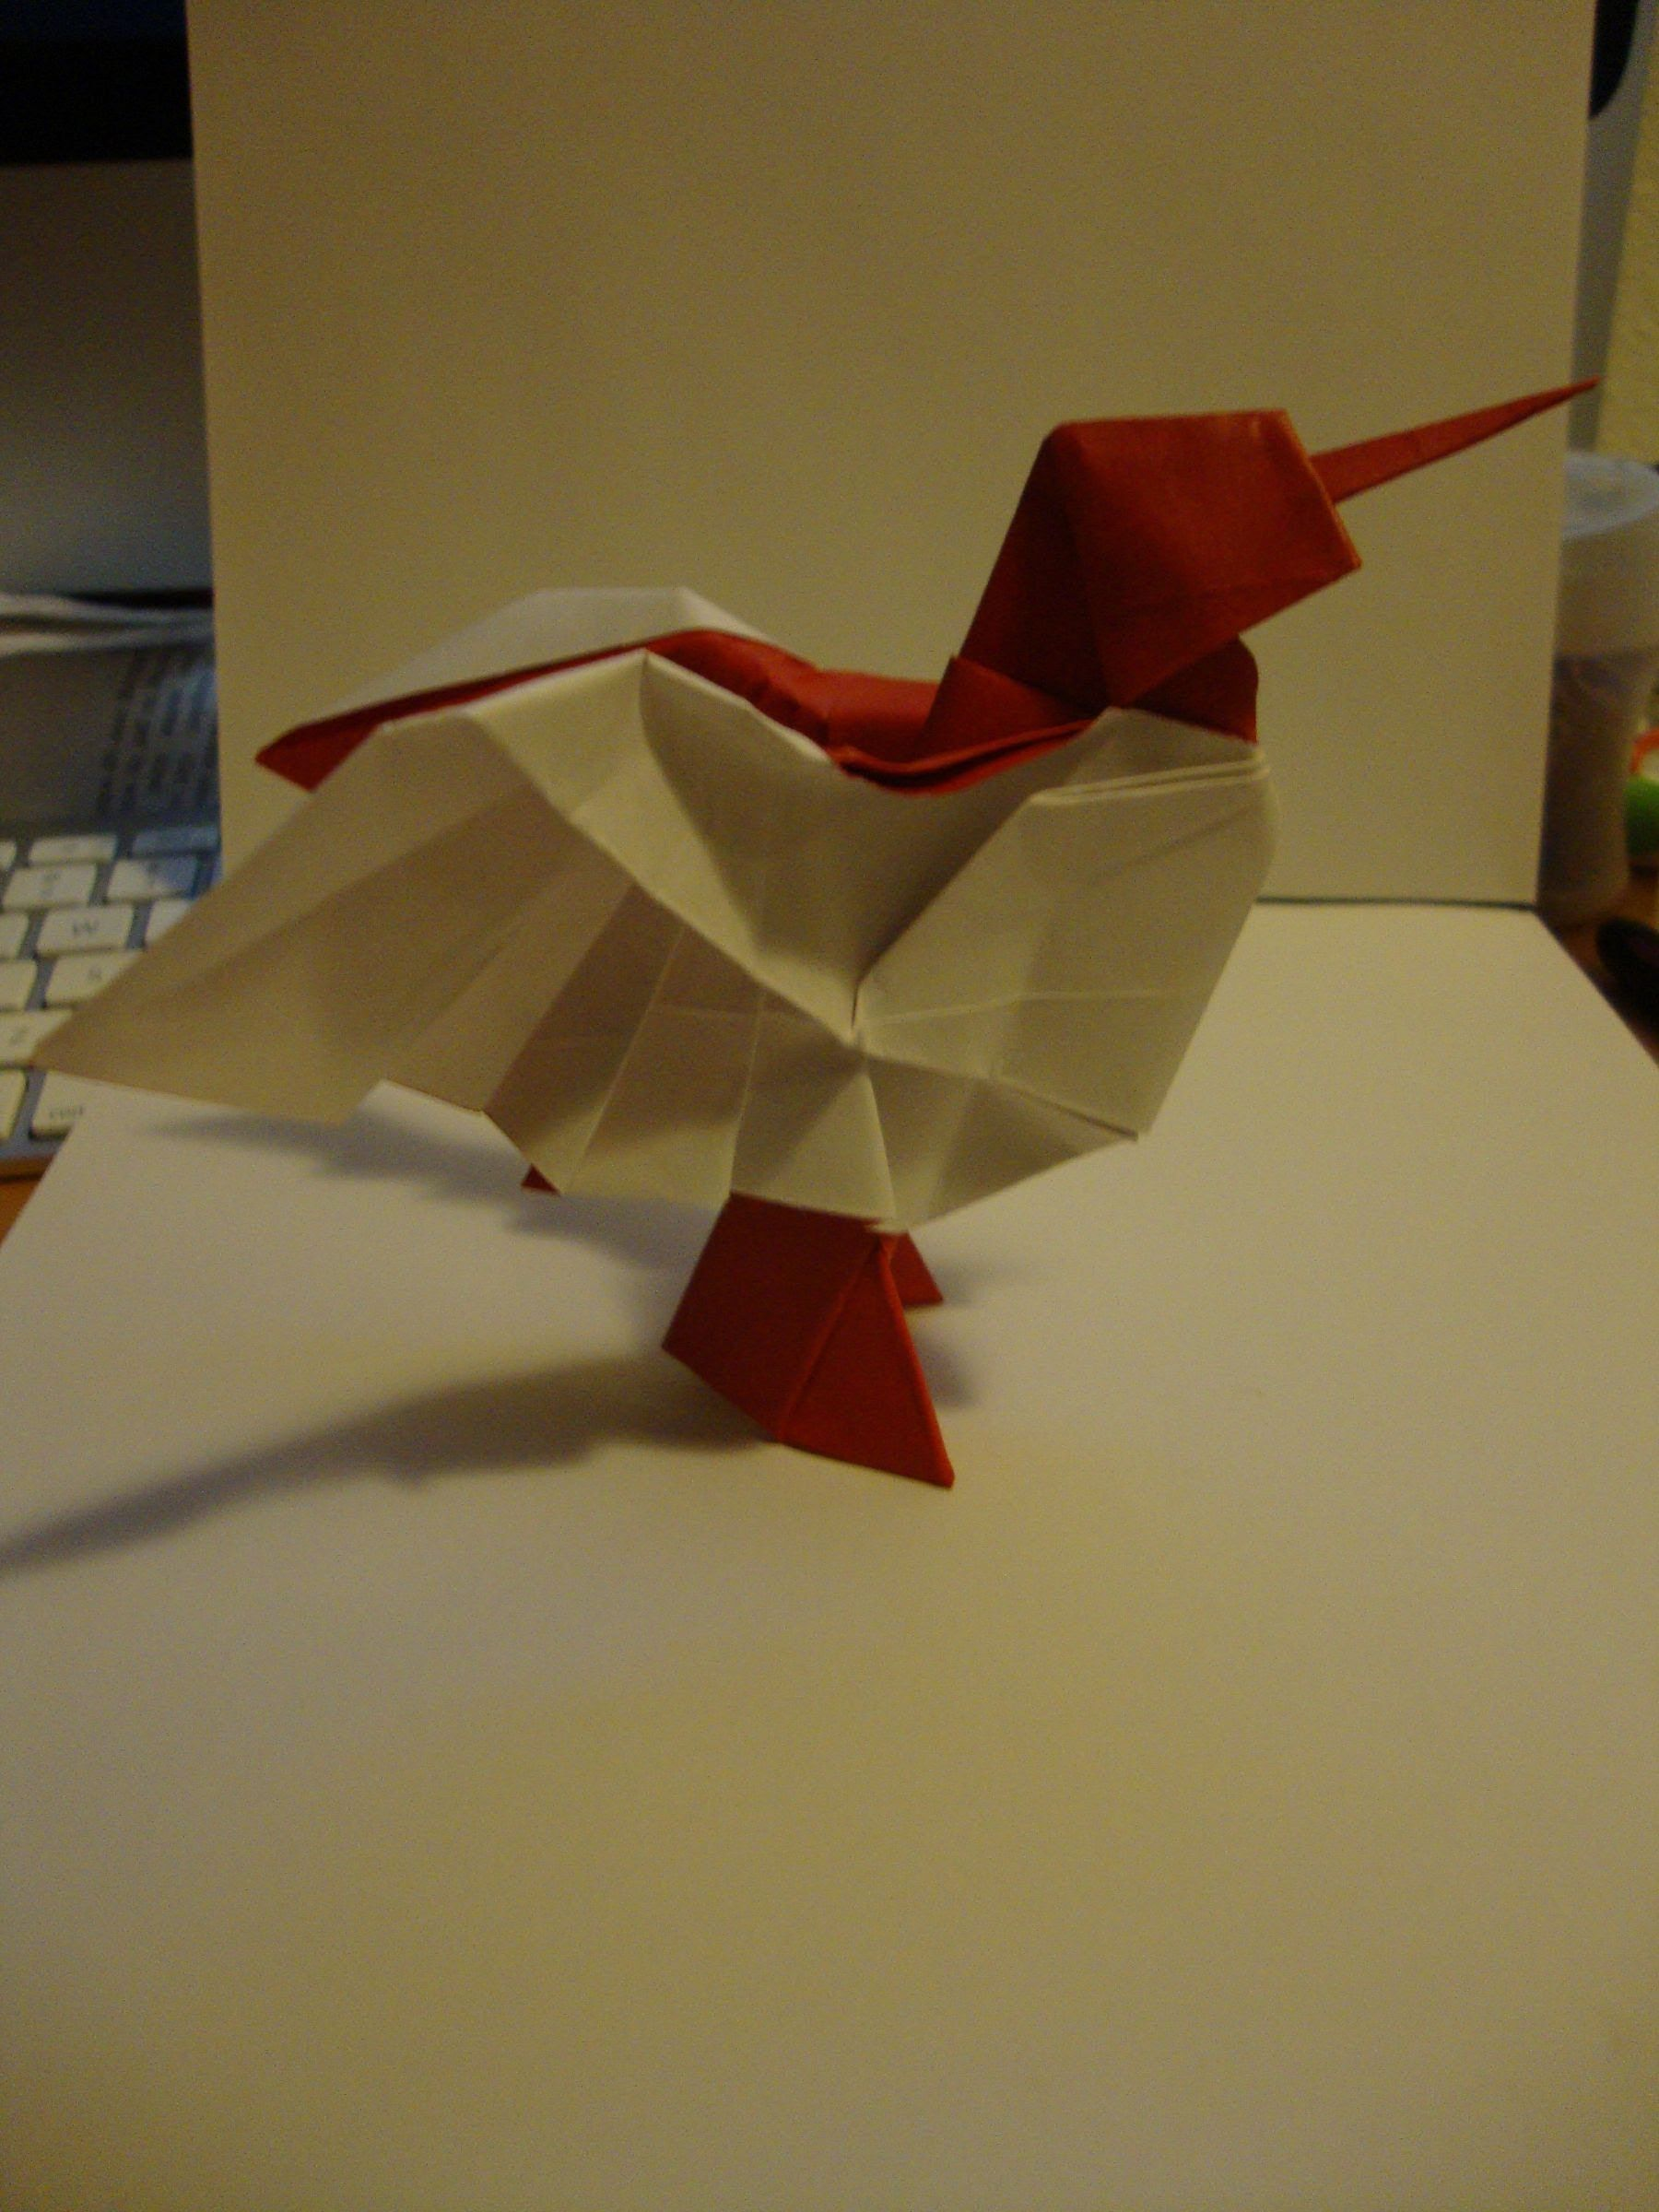 origami hummingbird diagram instructions 1989 ford ranger fuse box how to by jesse barr crafts